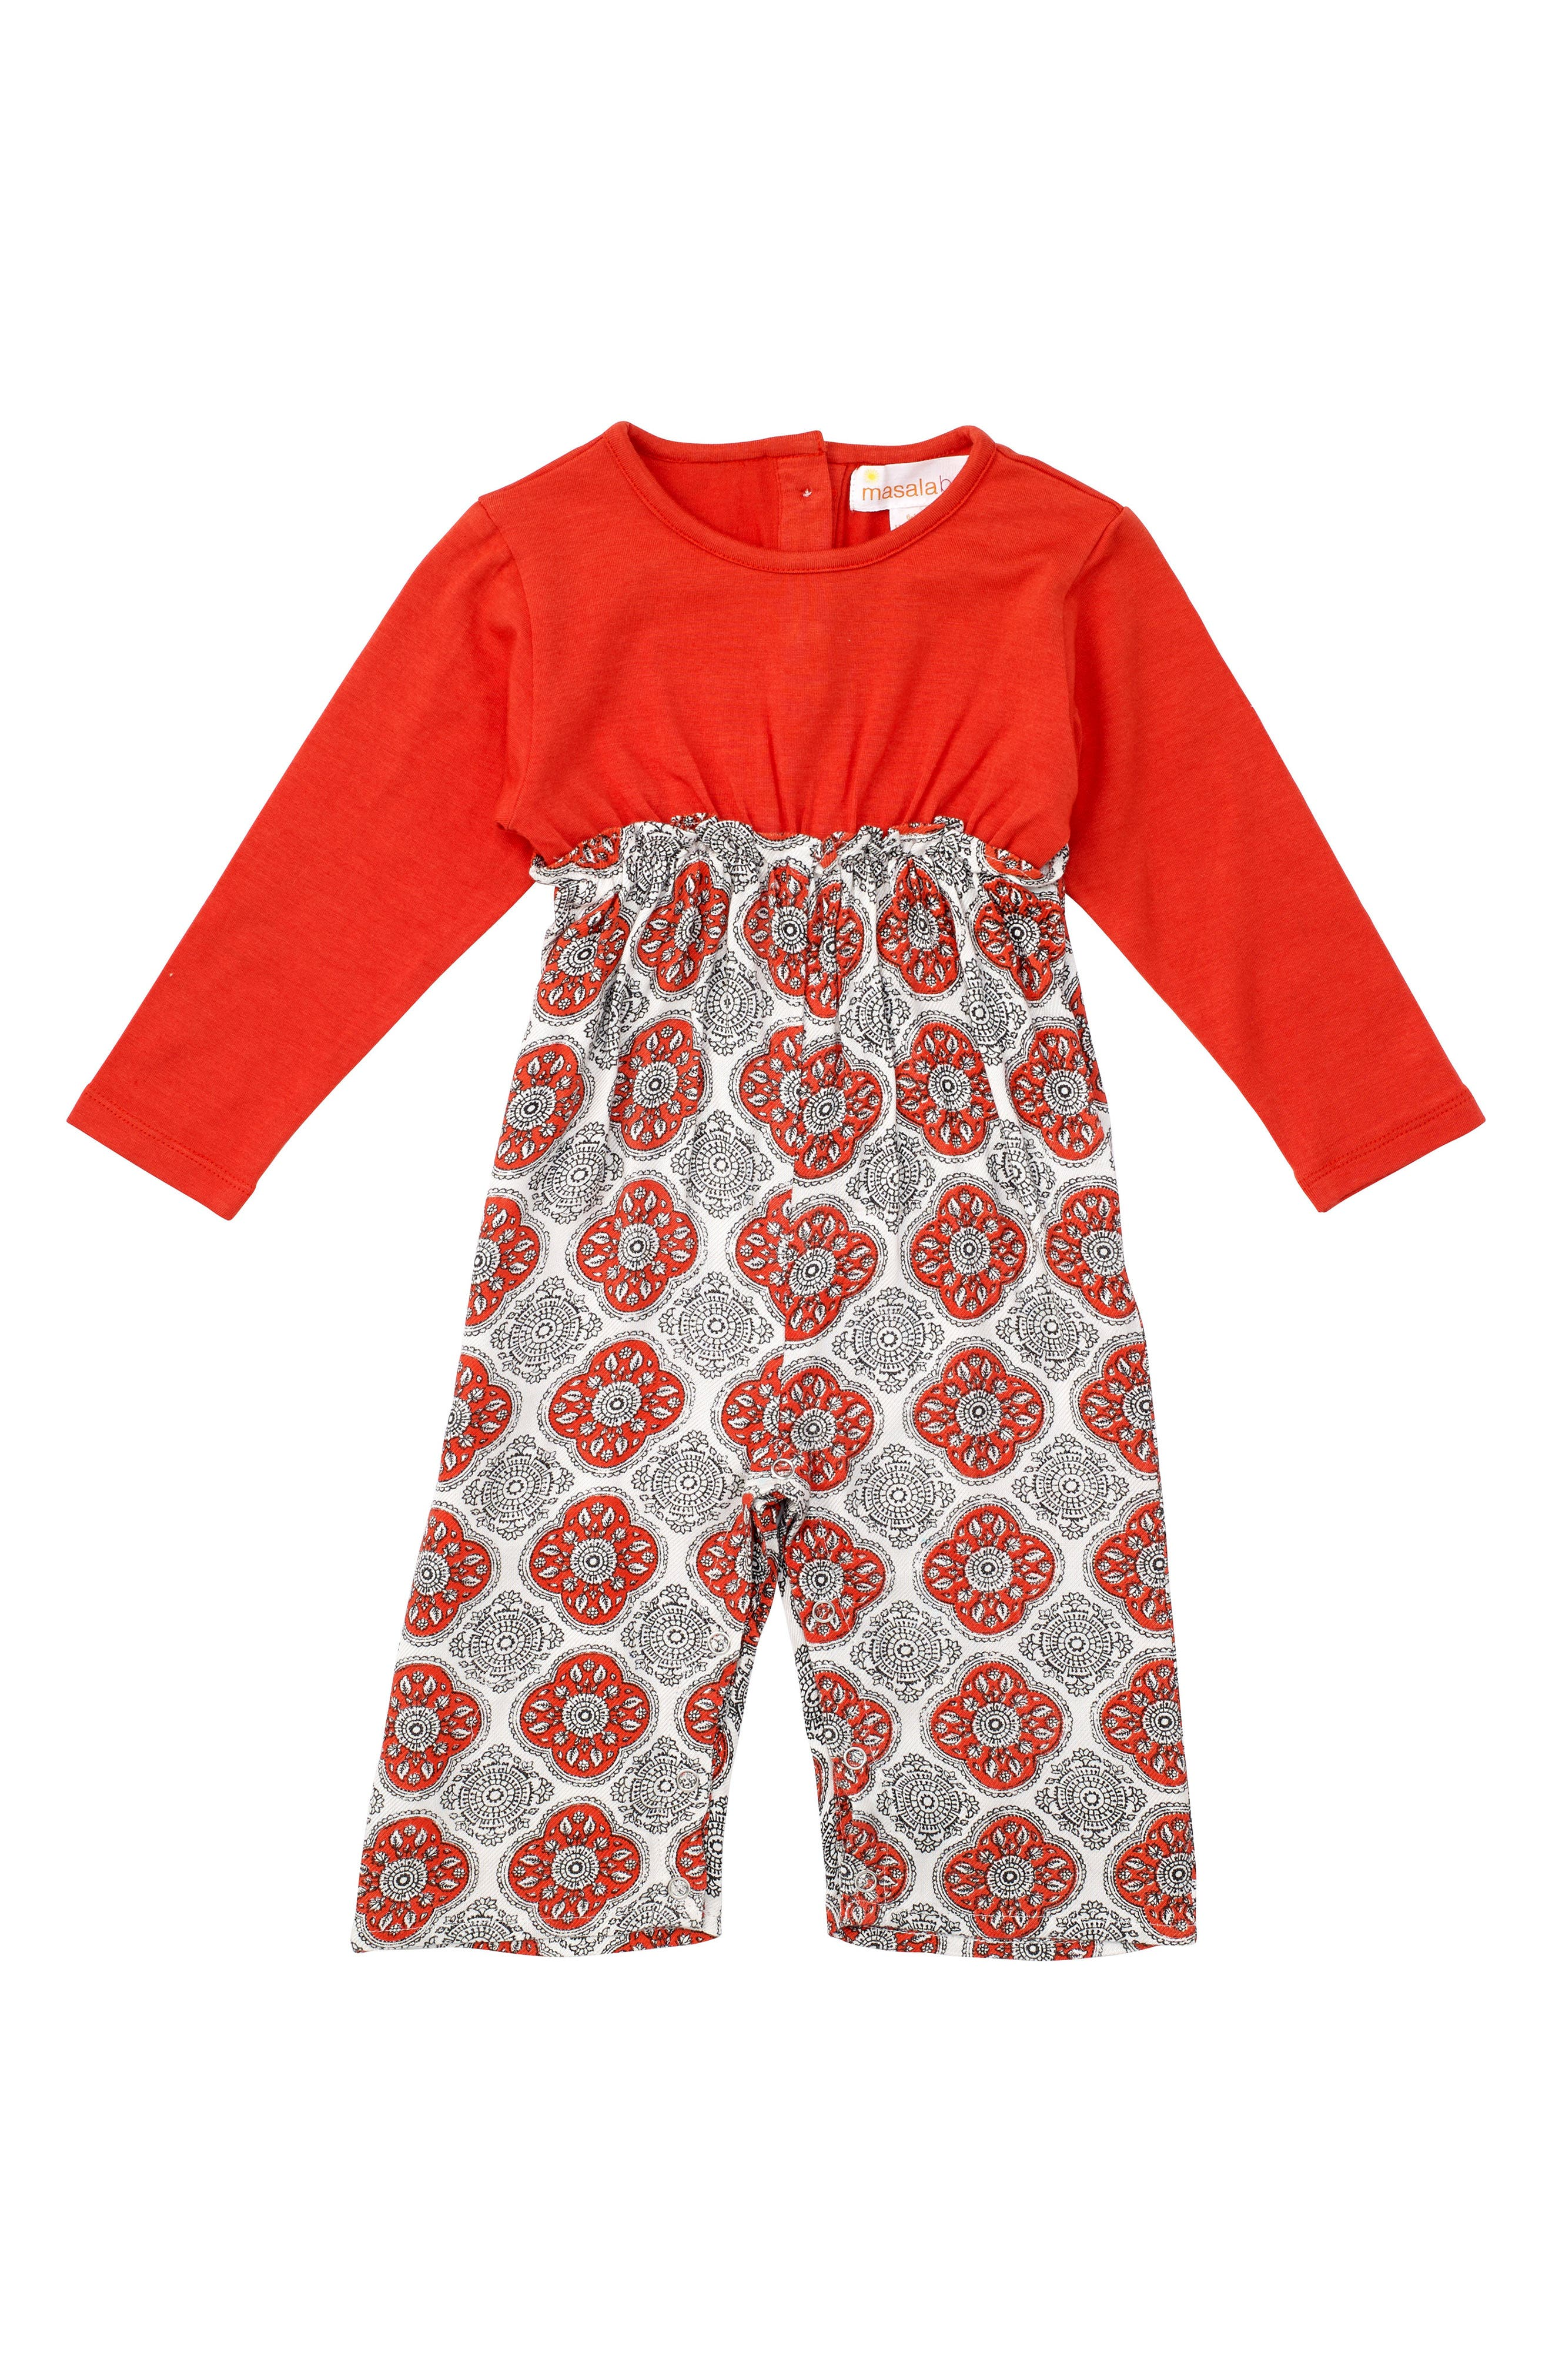 Main Image - Masalababy Chelsea Romper (Baby Girls)